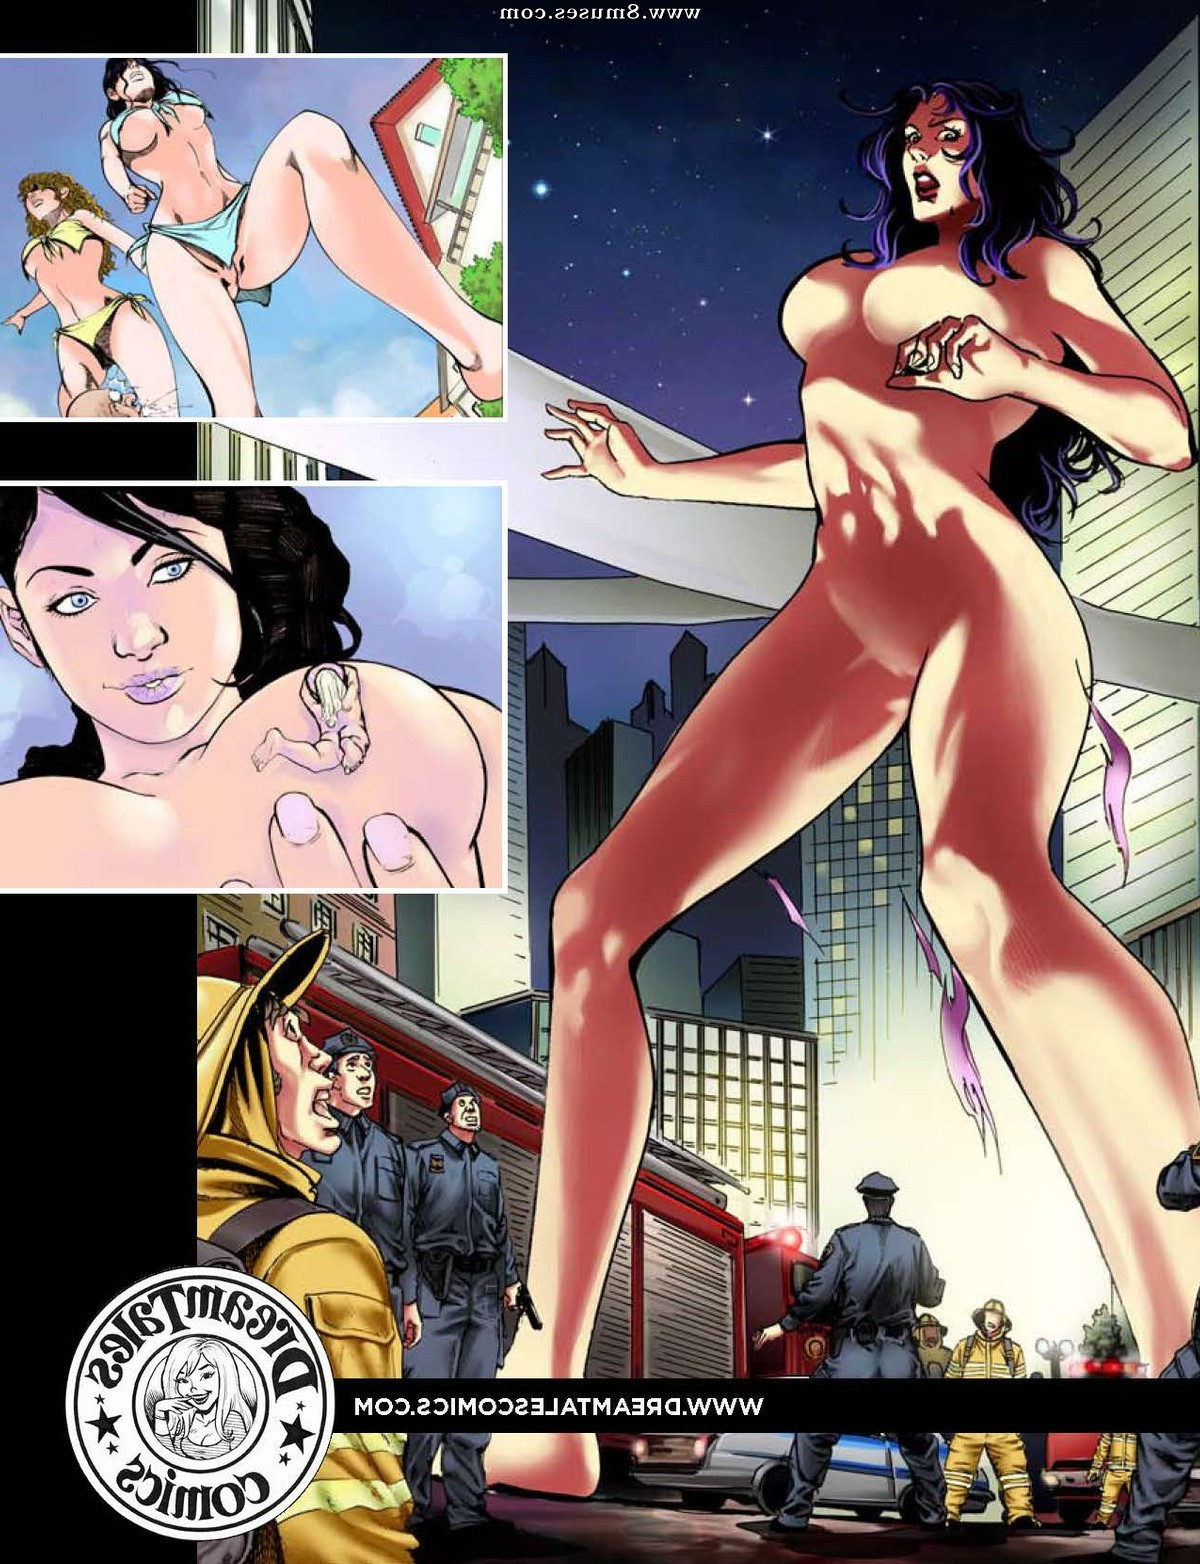 DreamTales-Comics/Bojays-Transformation-Compilation/Issue-1 Bojays_Transformation_Compilation_-_Issue_1_57.jpg